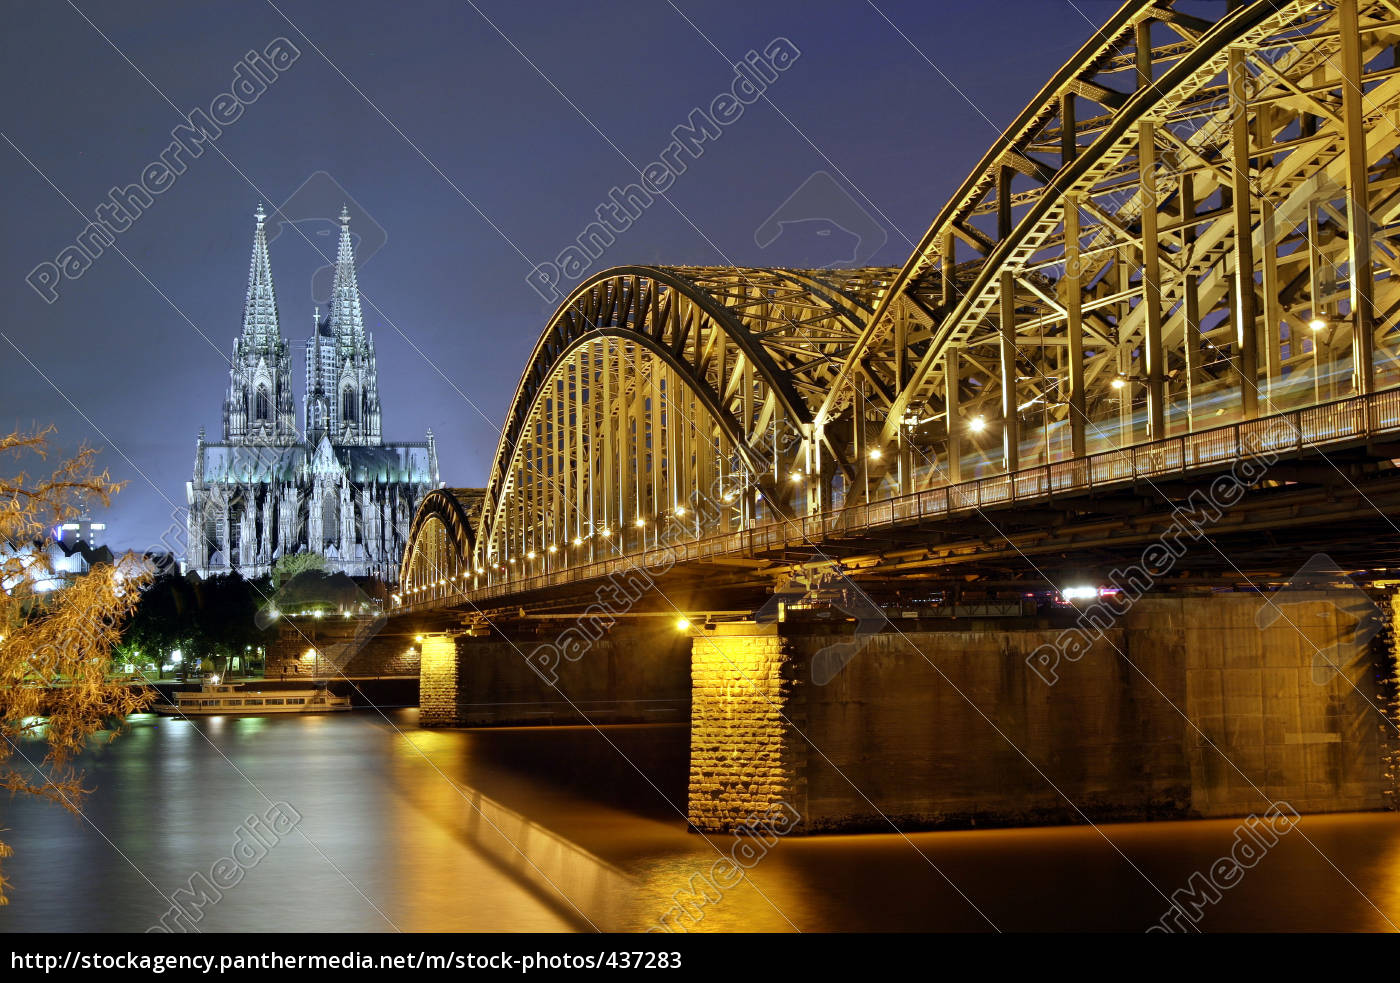 cologne, cathedral, and, hohenzollern, bridge - 437283